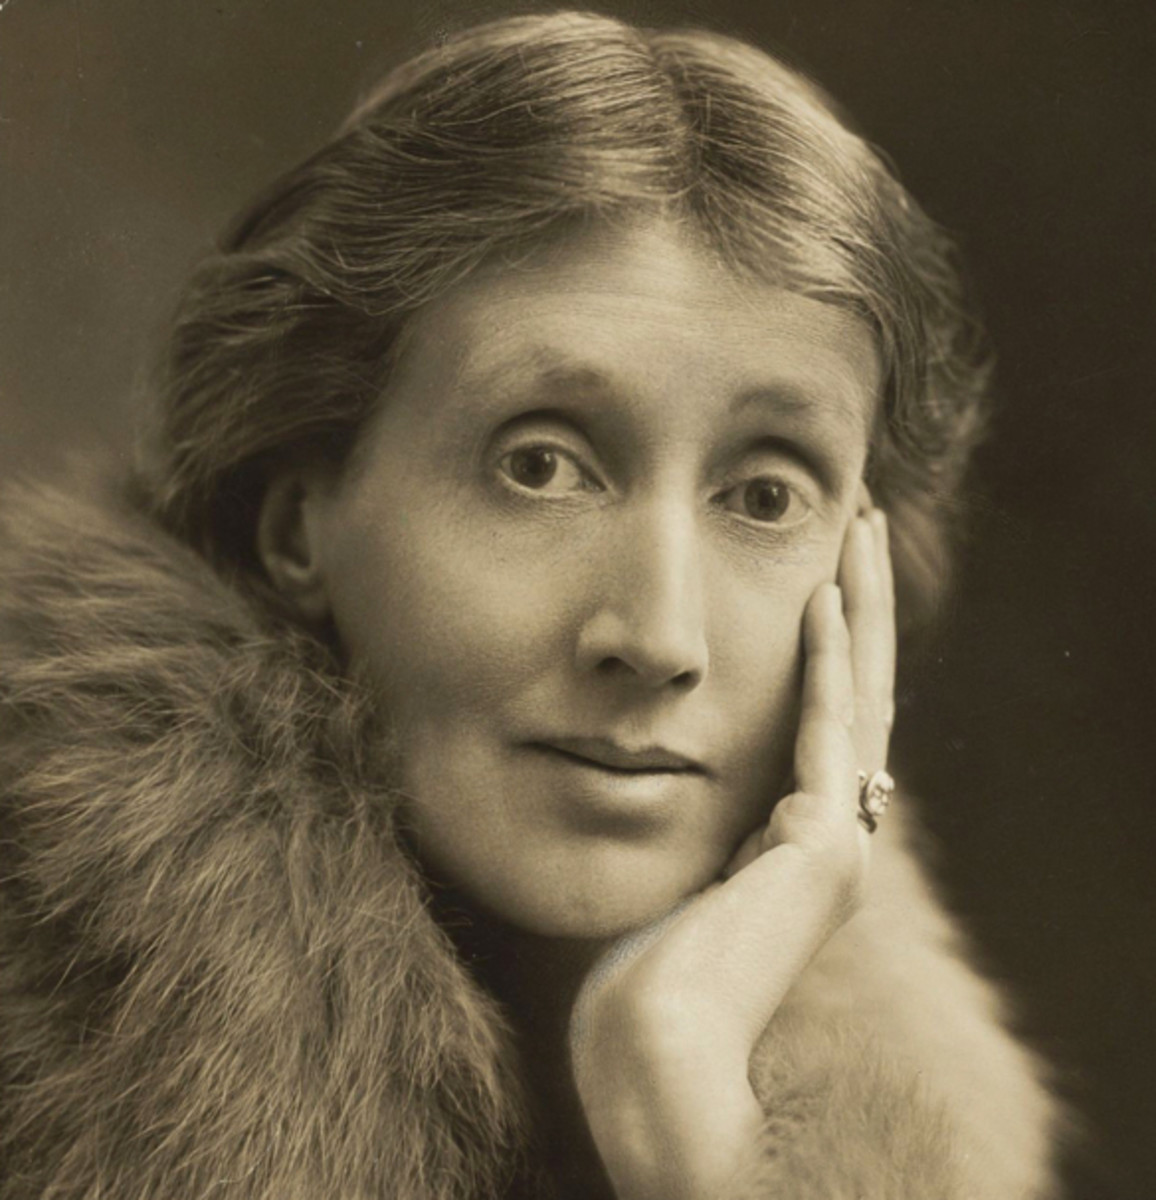 virginia wolf A jokey famous women dinner service and a faint celebration of woolf's novel orlando are lightweight openers for the bloomsbury group shrine's spacious new galleries.